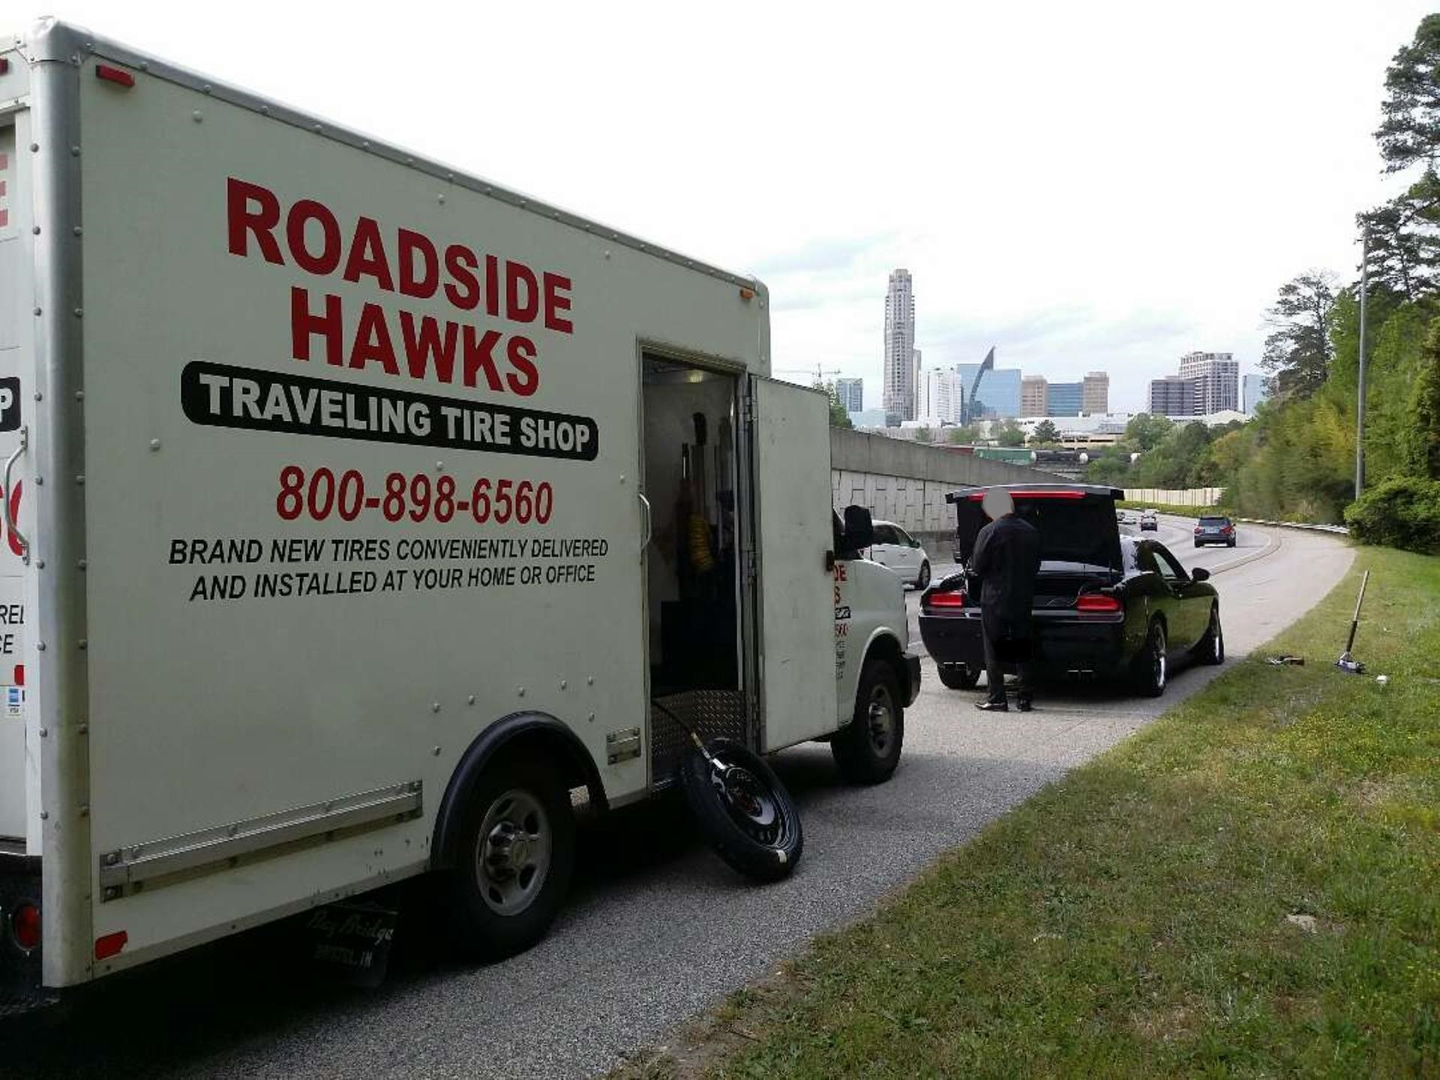 Tire Repair Near Me Open Sunday >> 24 Hour Roadside Hawks Traveling Tire Shop Atlanta